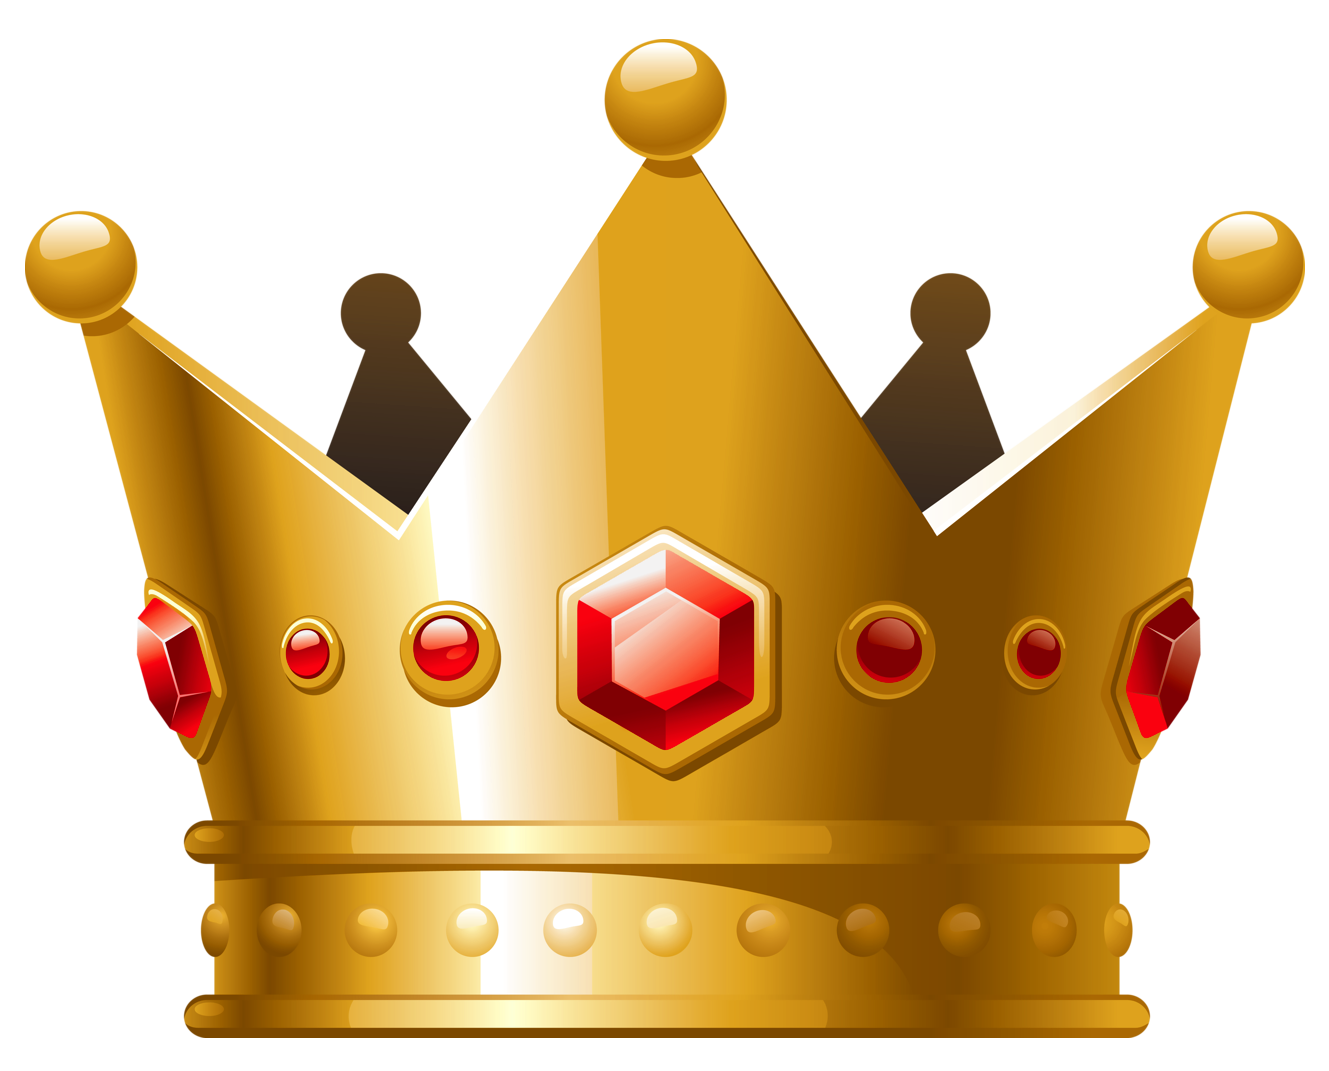 Treasure clipart crown. Transparent image with background